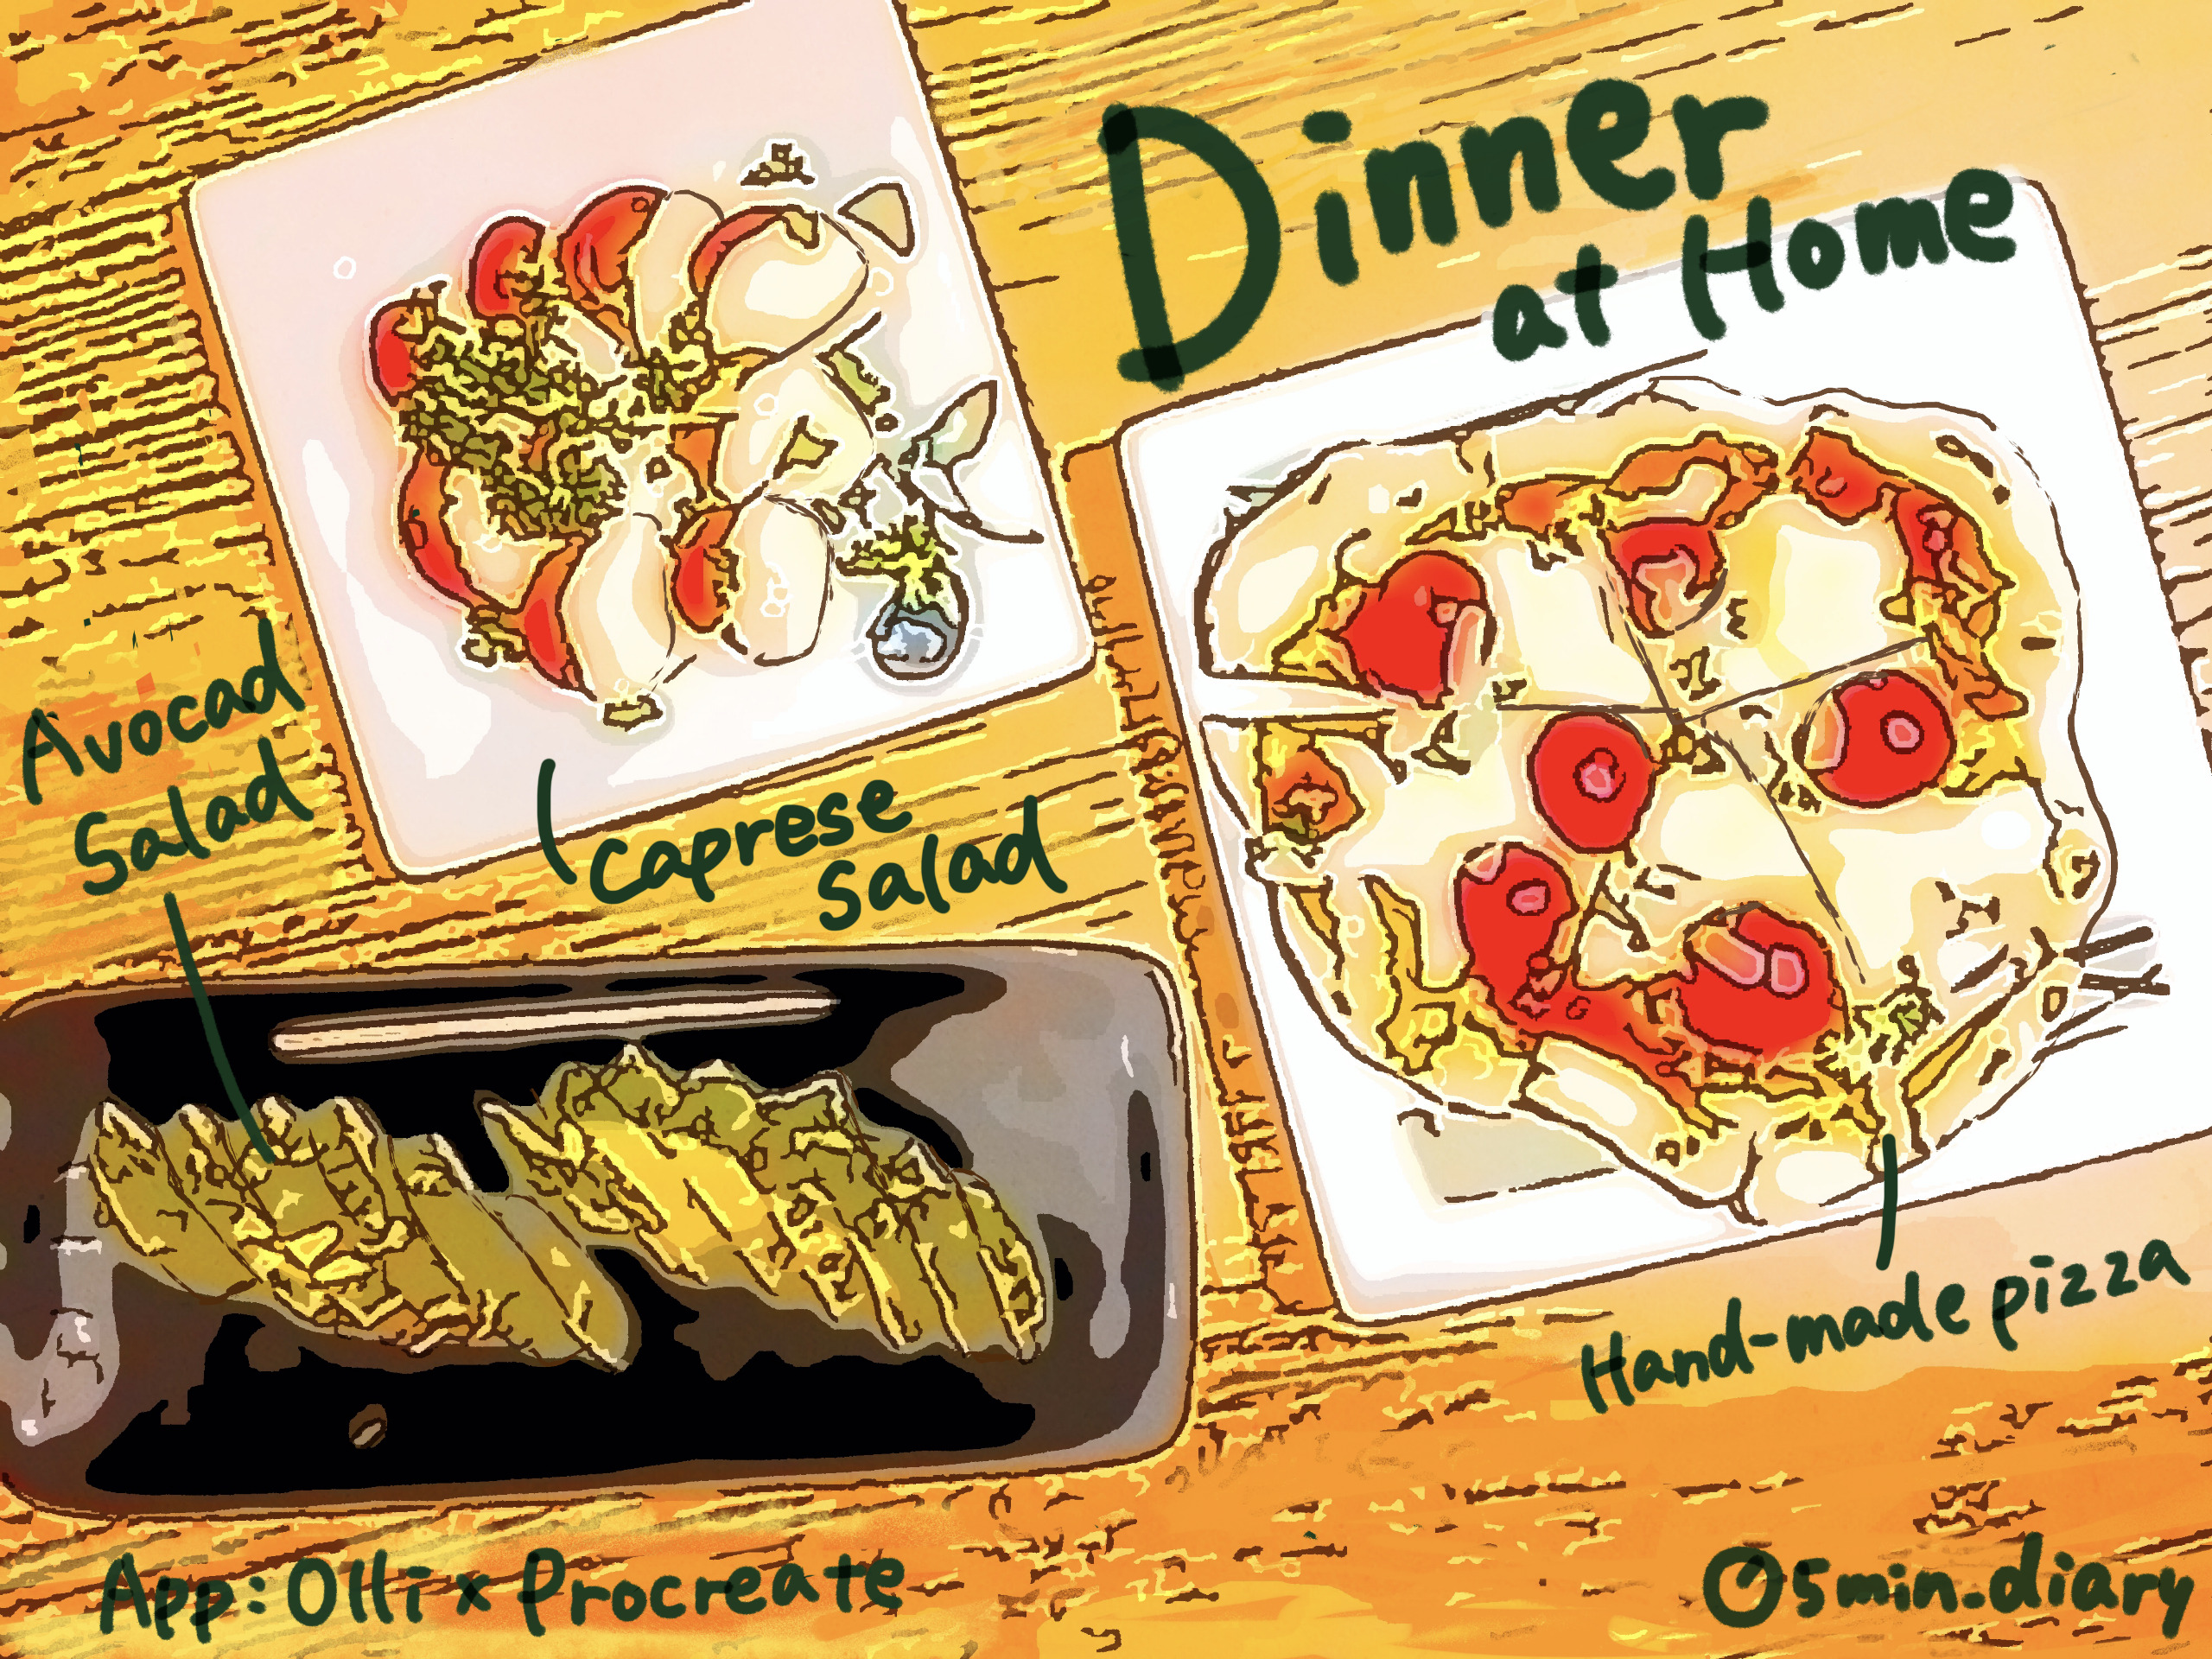 Dinner at Home Image